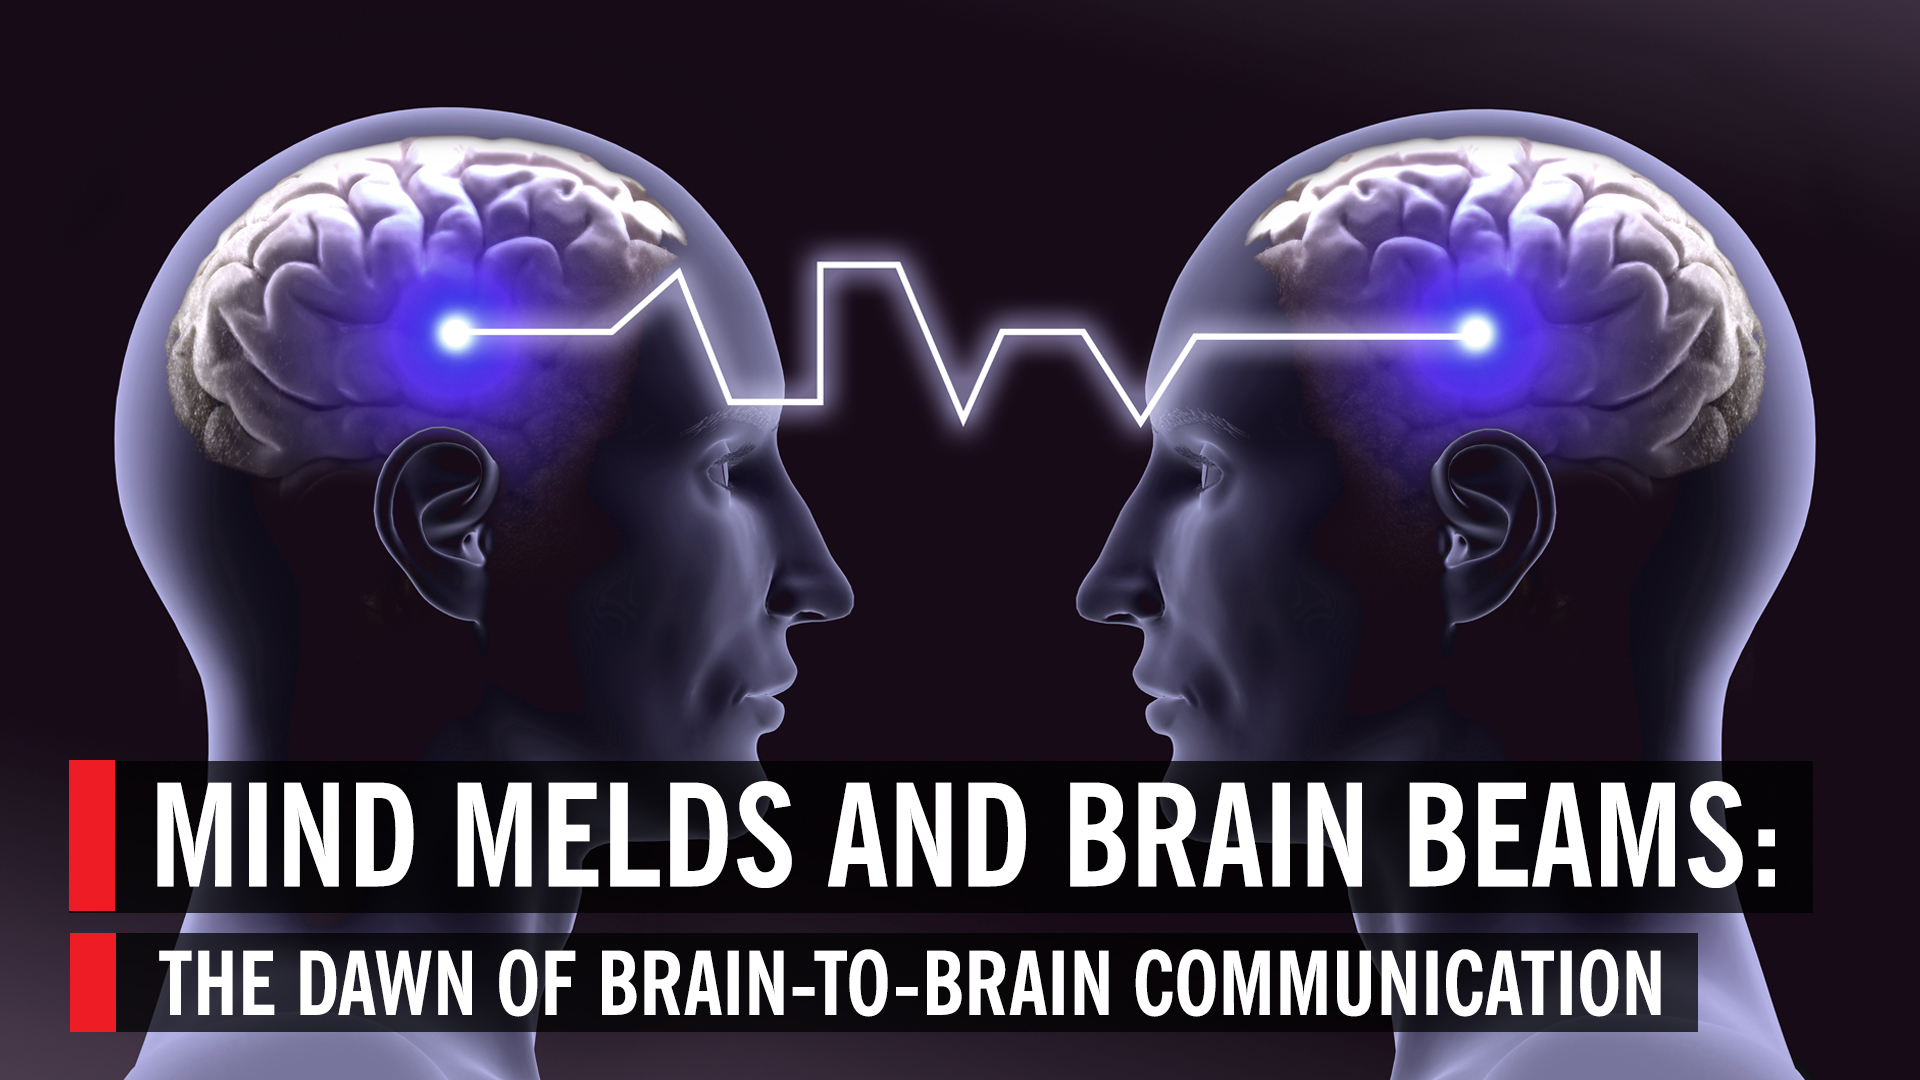 Mind Melds and Brain Beams: The Dawn of Brain-to-Brain Communication ...